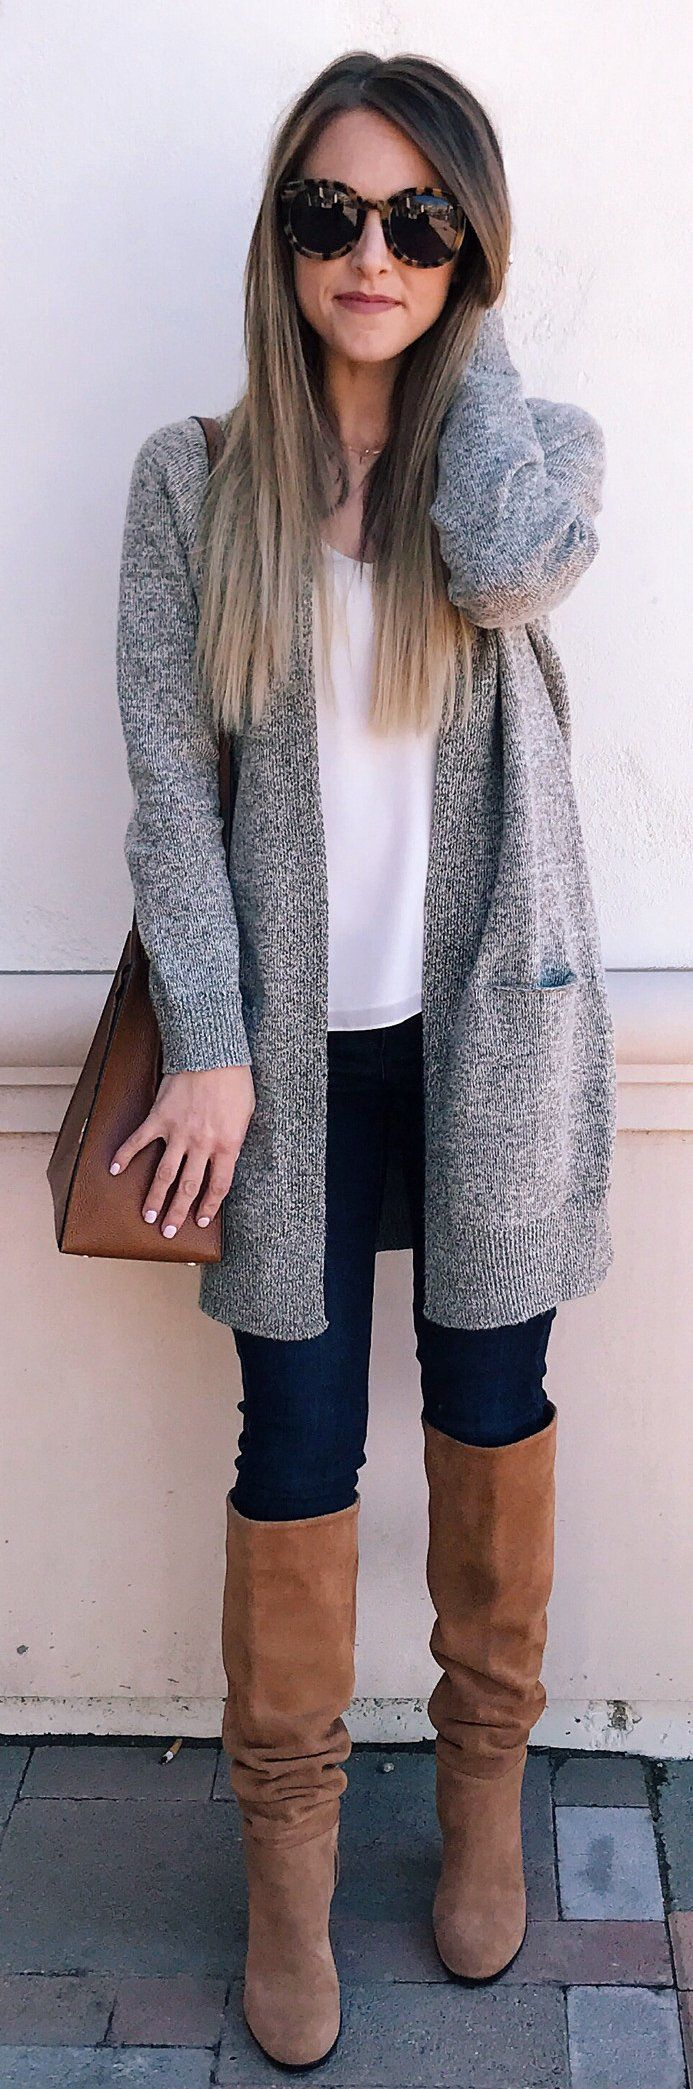 #winter #fashion /  Grey Cardigan / Brown OTK Boots / Black Skinny Jeans / White Top / Brown Leather Shoulder Bag